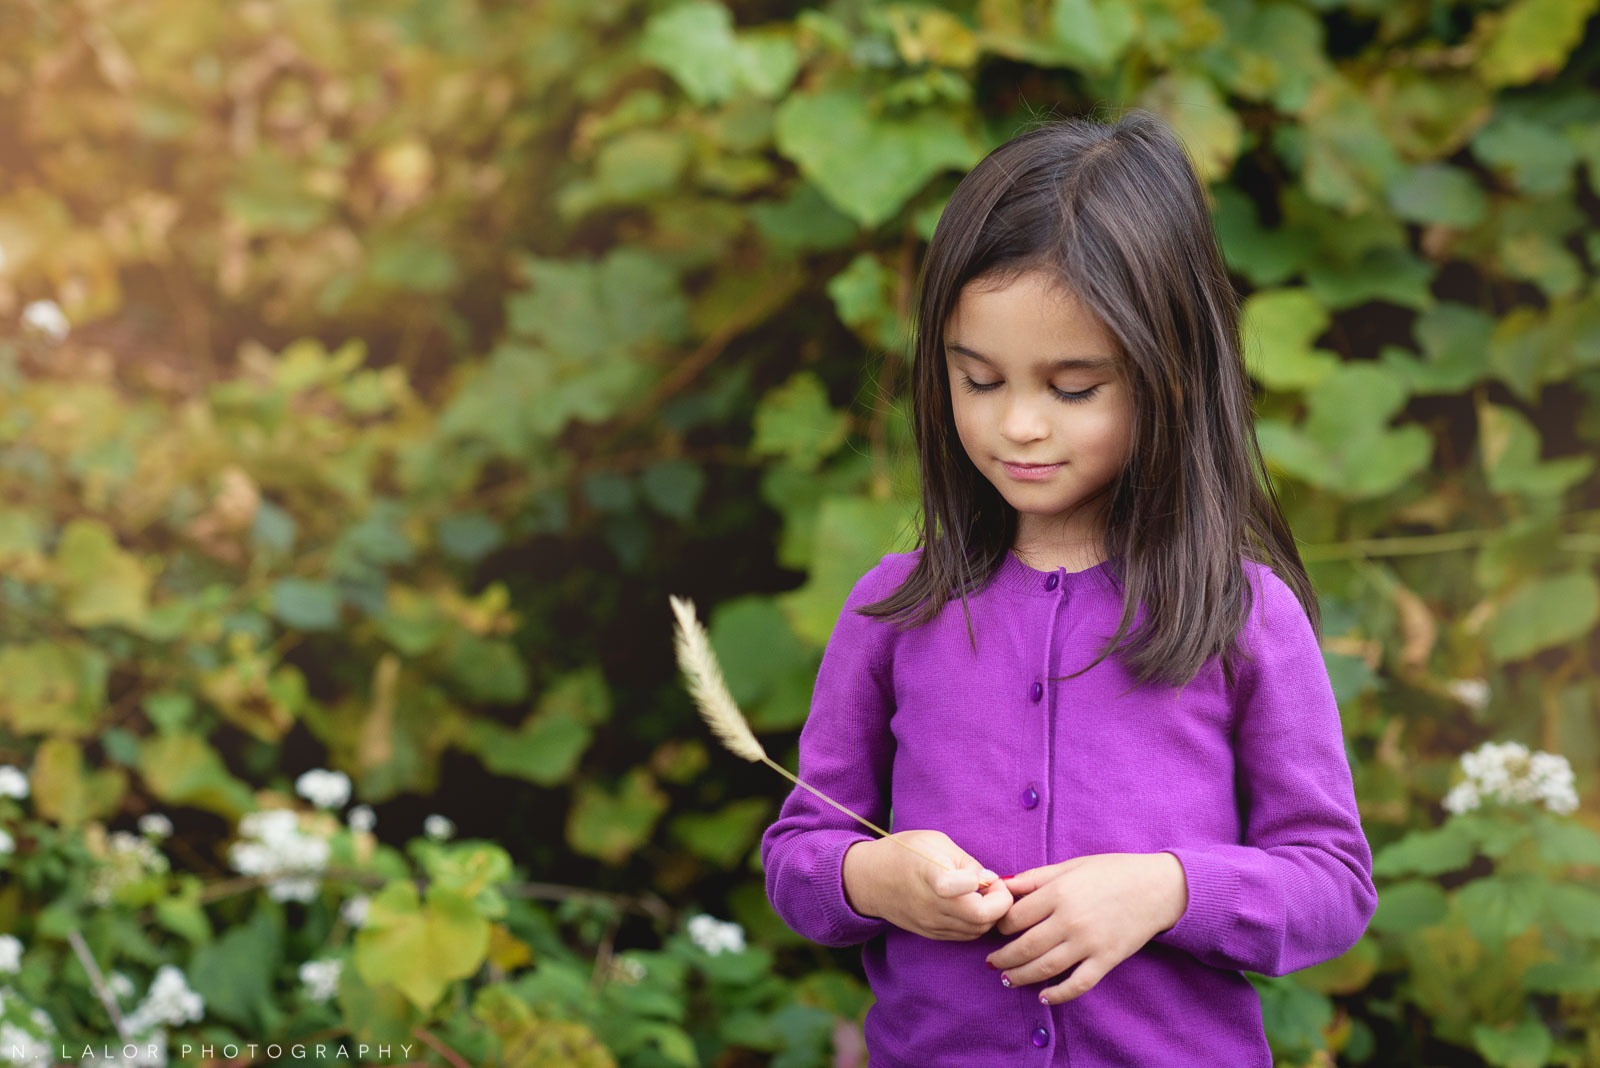 Lifestyle art portrait of girl at Waveny Park New Canaan. Photo by N. Lalor Photography.